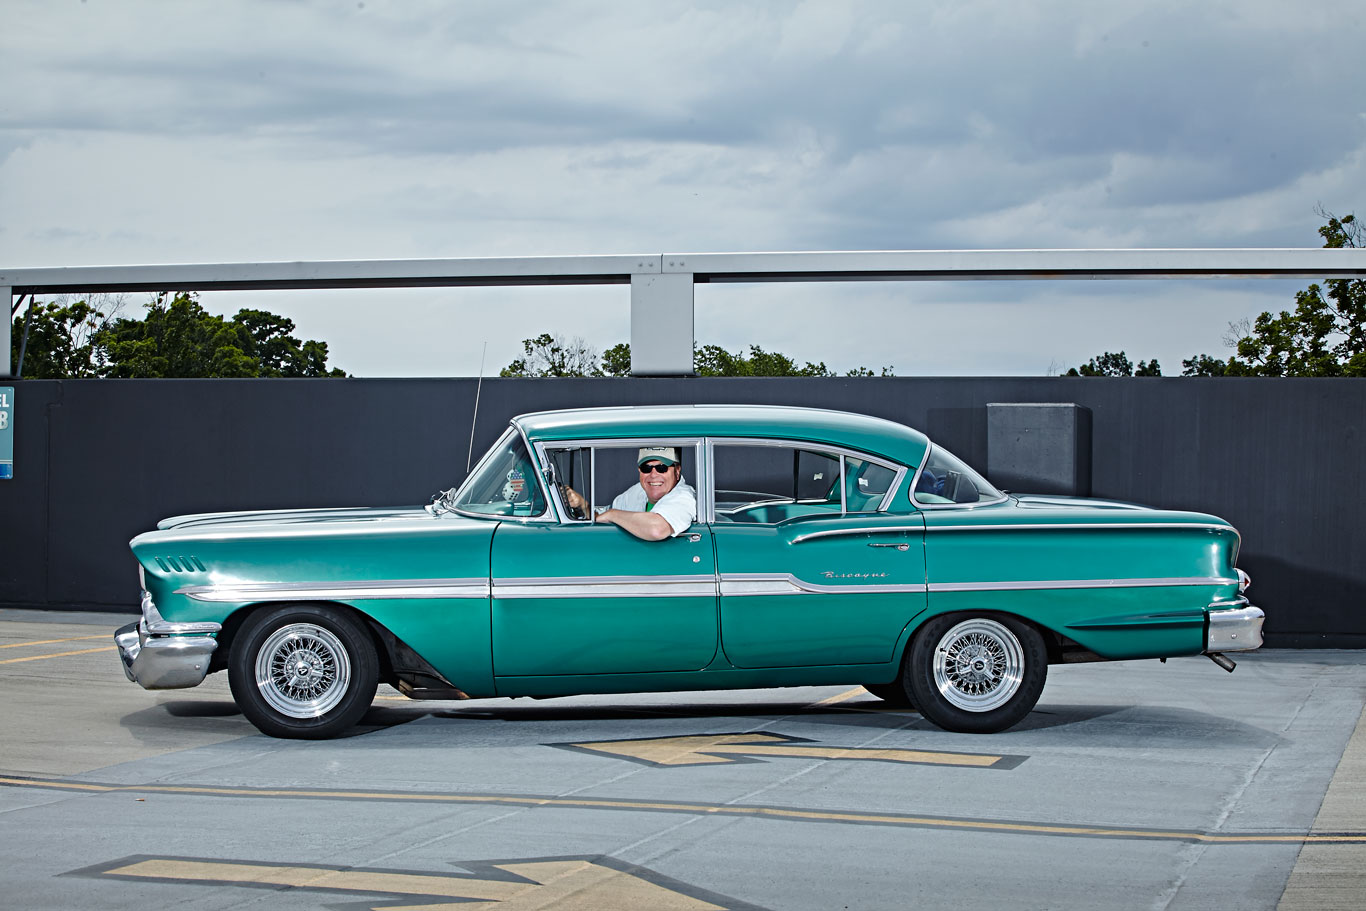 OUR CARS: Rudy Bishop's 1958 Chevrolet Biscayne thumbnail